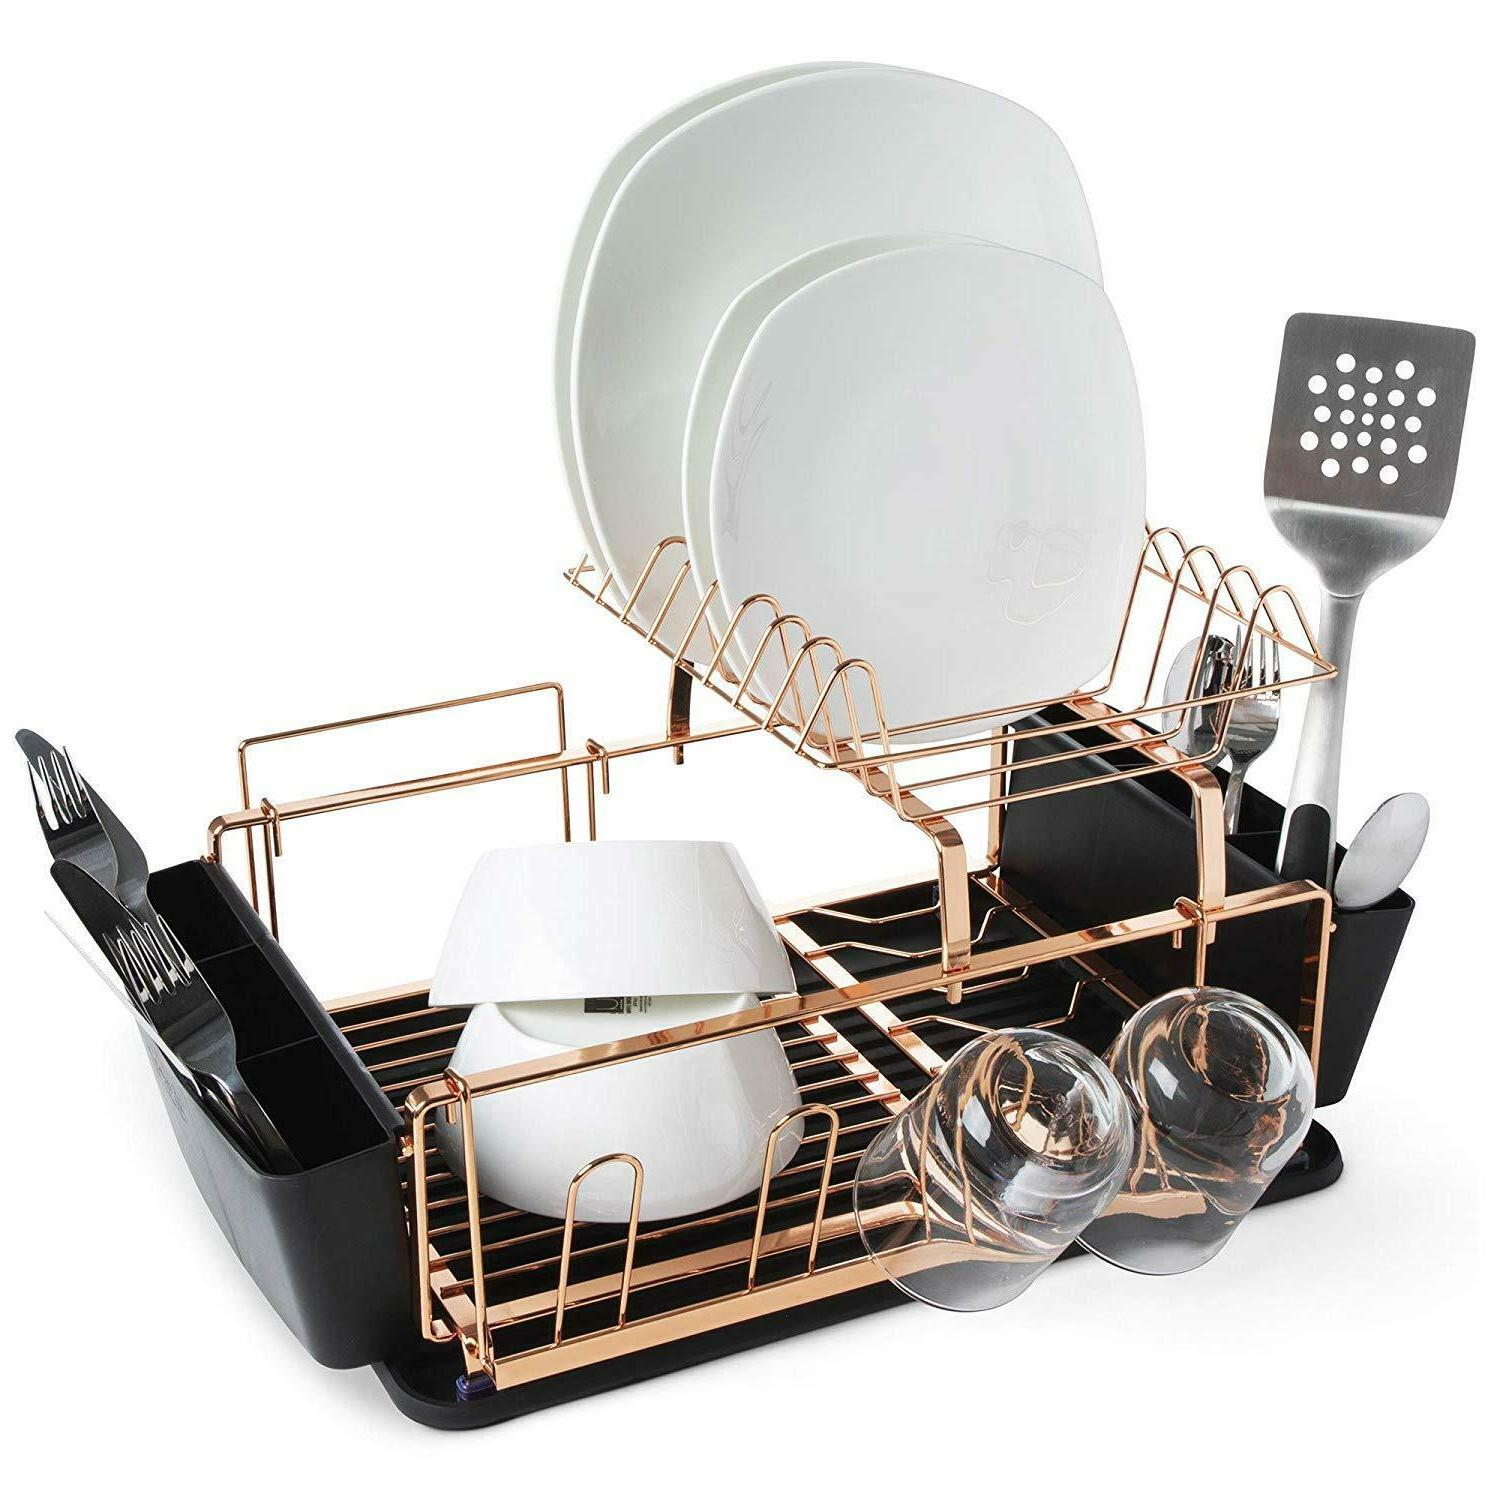 Copper Rack Holder​ Drainboard Adjustable